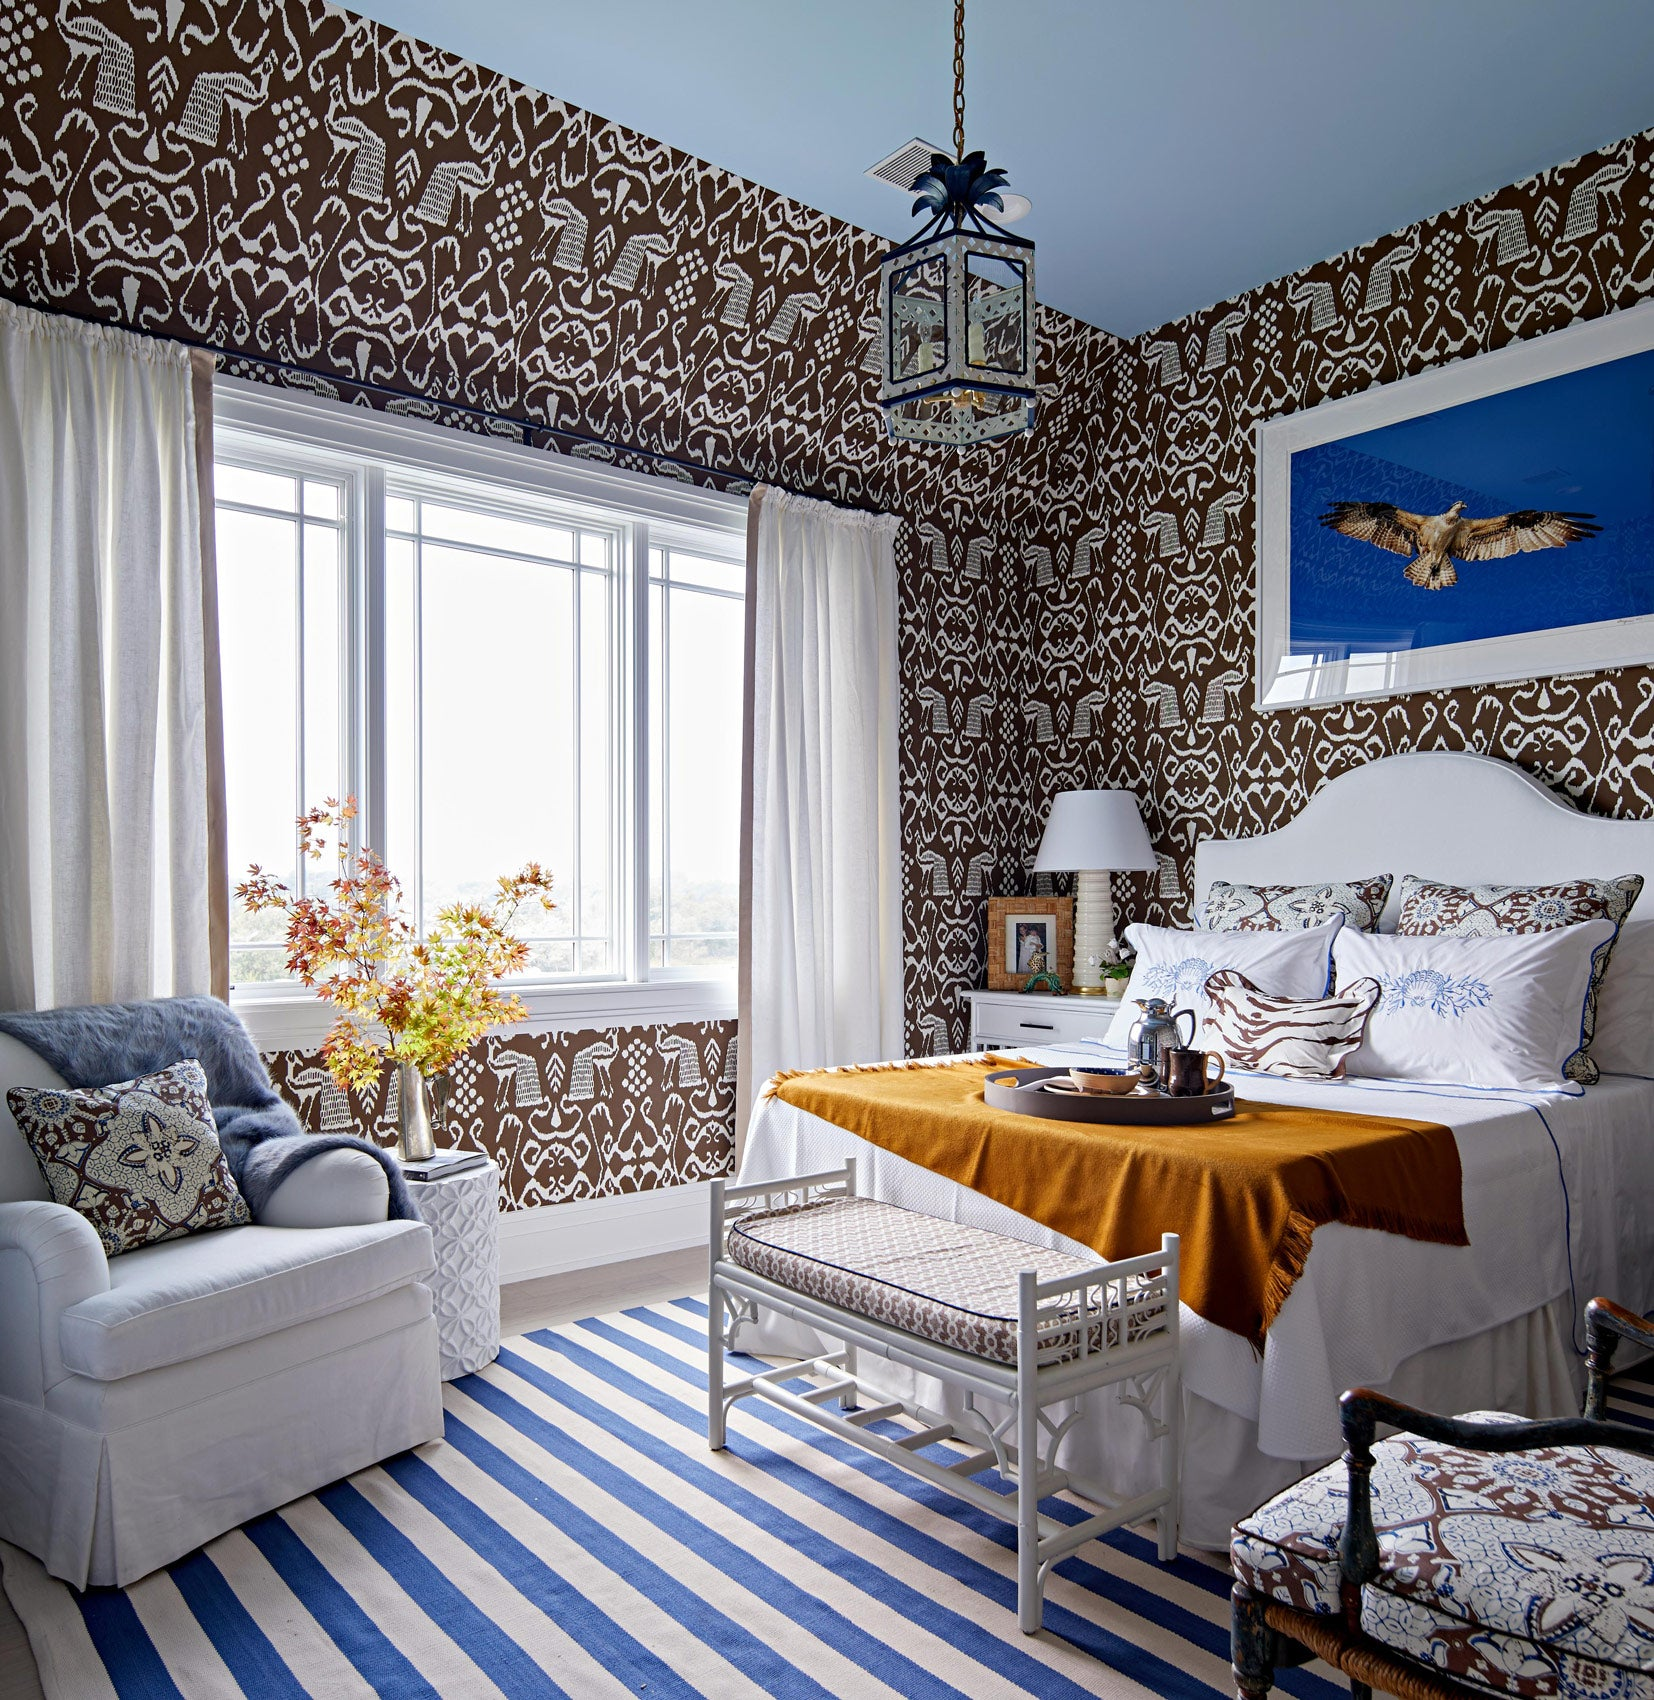 Leta Austin Foster's bedroom in the Traditional Home Hampton's Showhouse